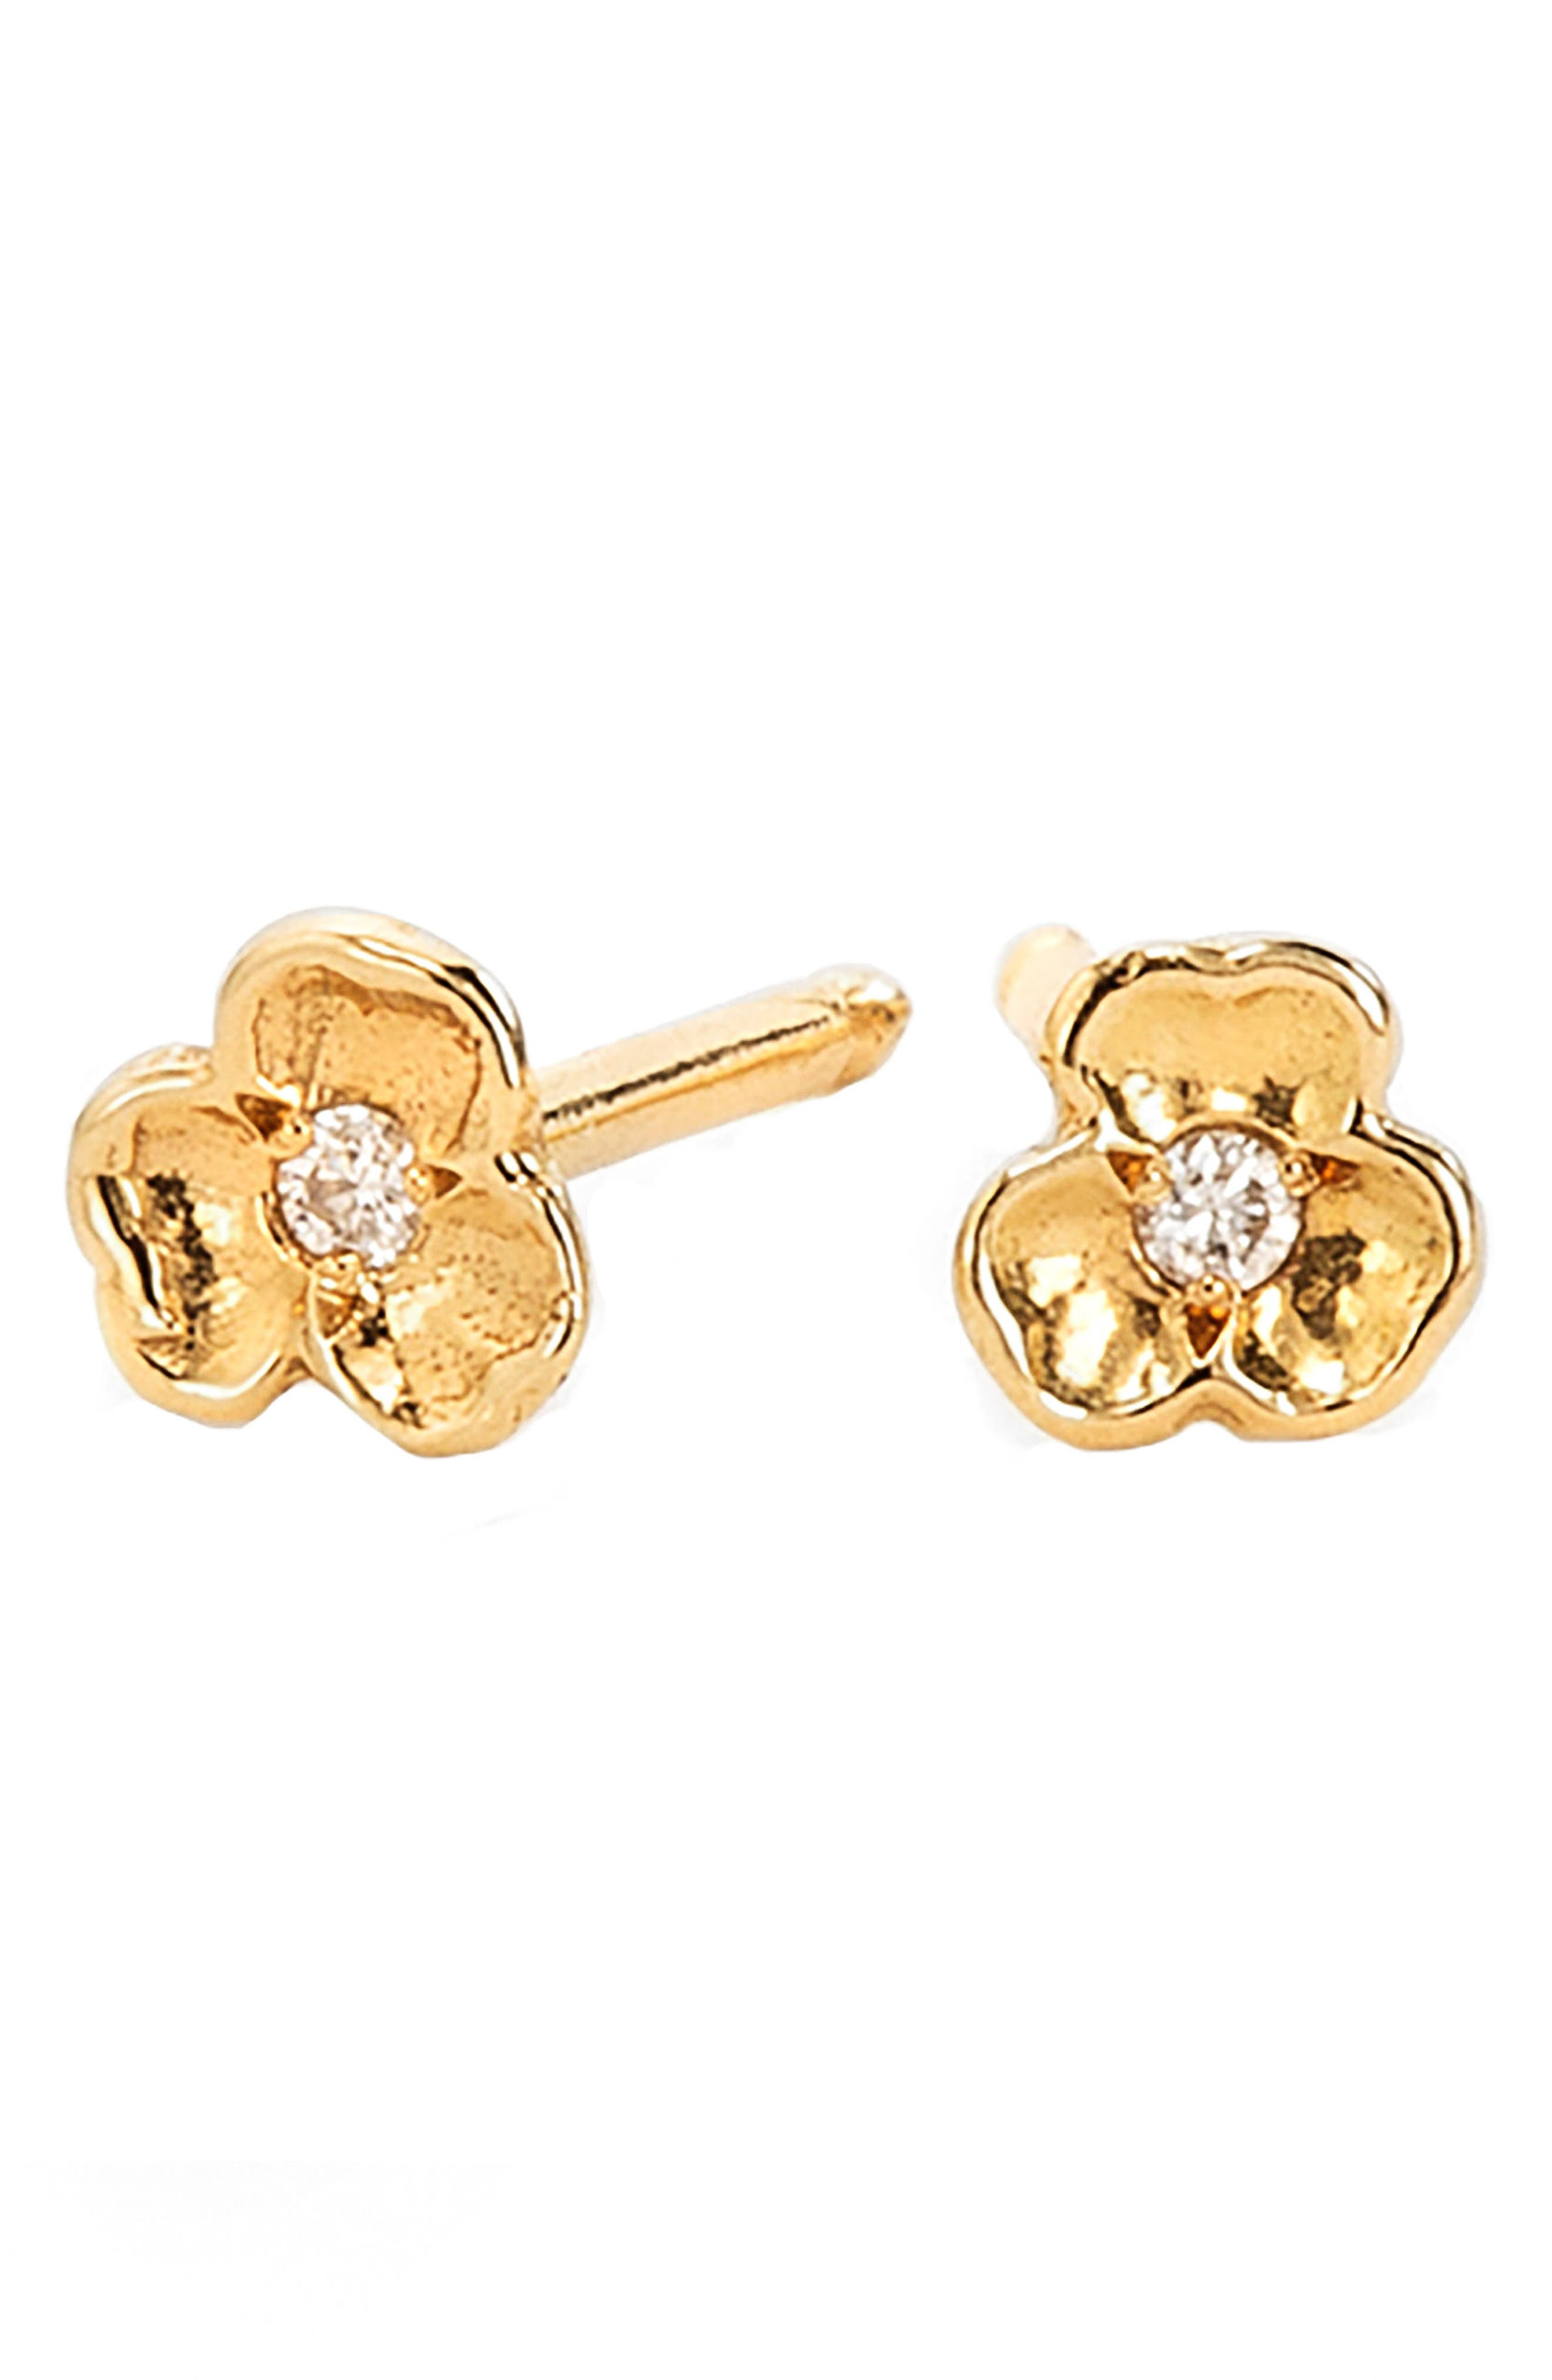 Tiny Diamond Pansy Flower Stud Earrings,                         Main,                         color, Yellow Gold